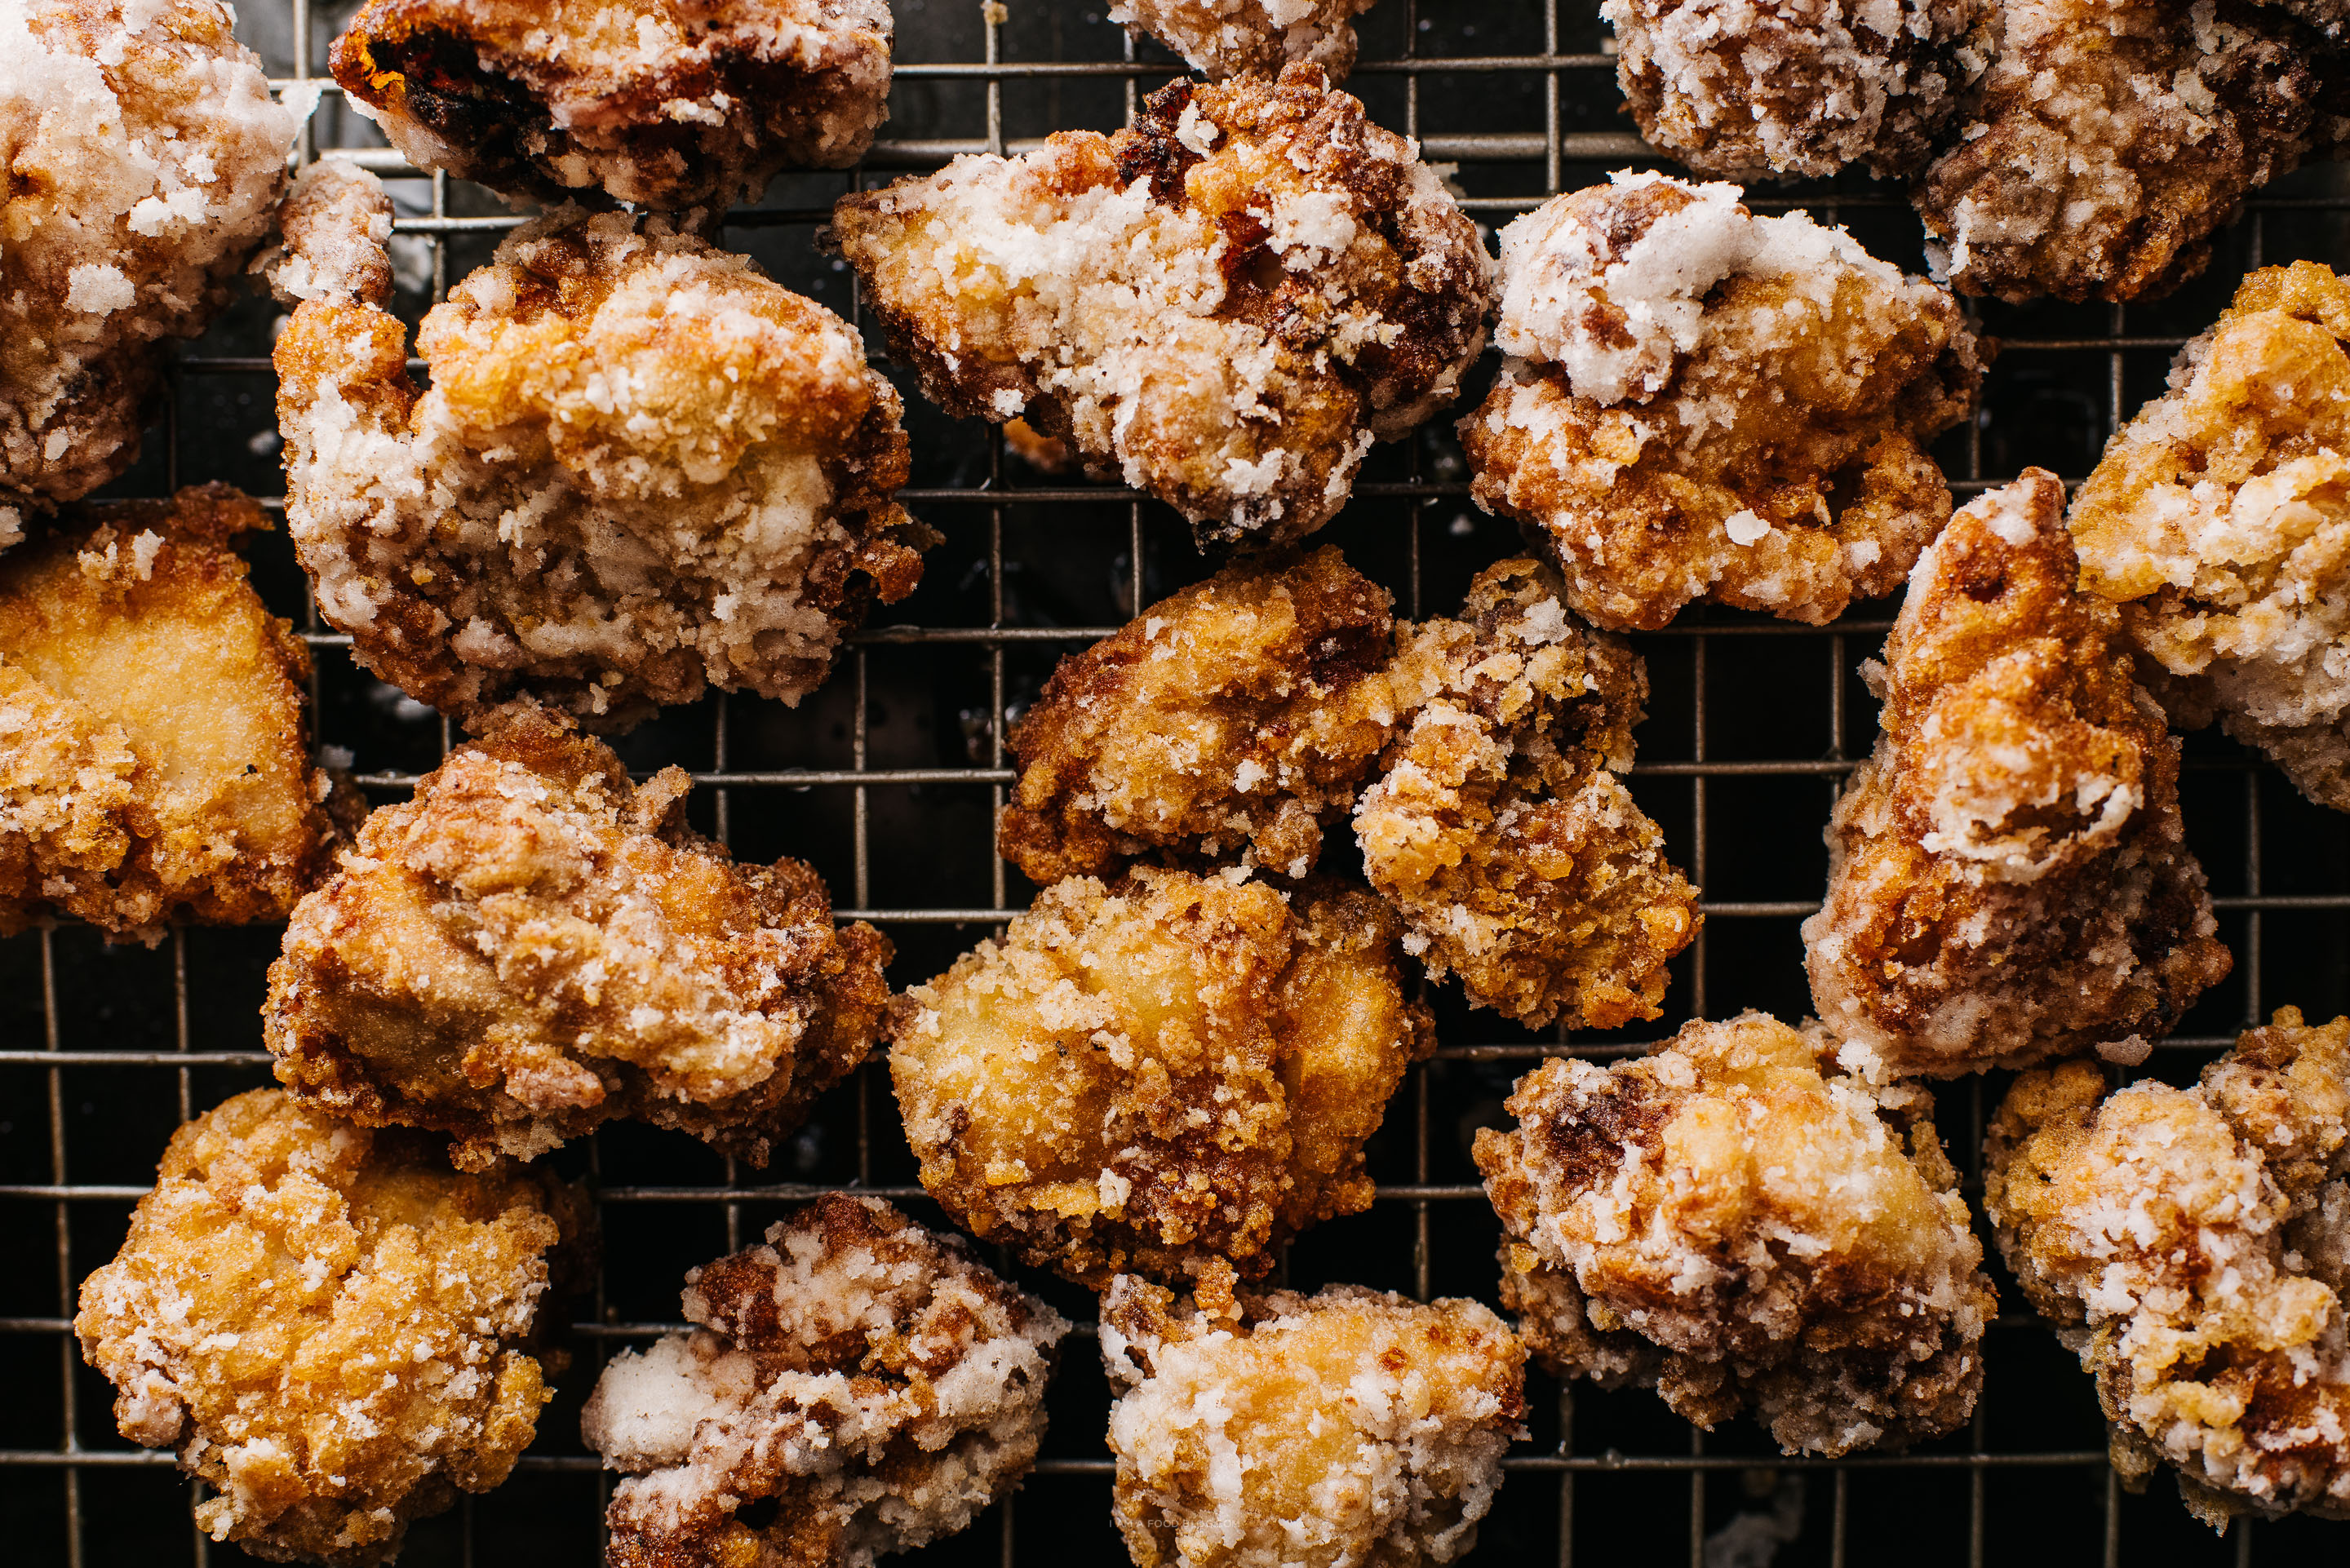 japanese fried chicken karaage recipe - www.iamafoodblog.com